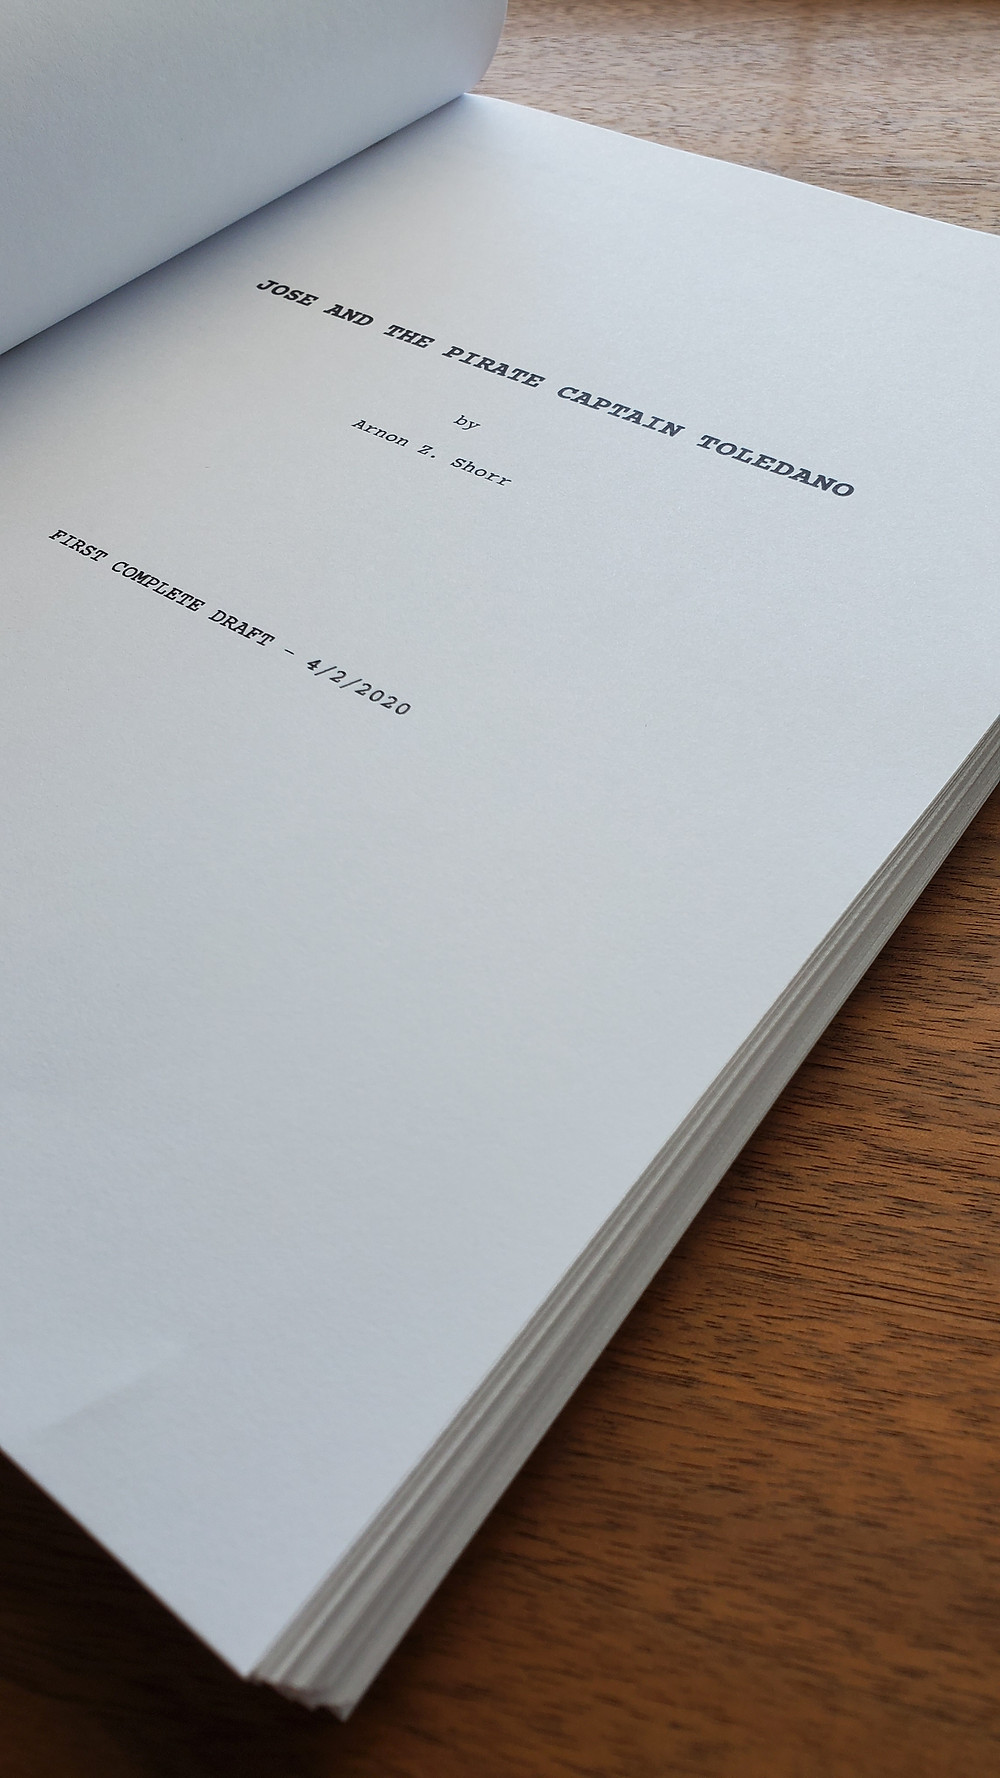 printed script of a graphic novel